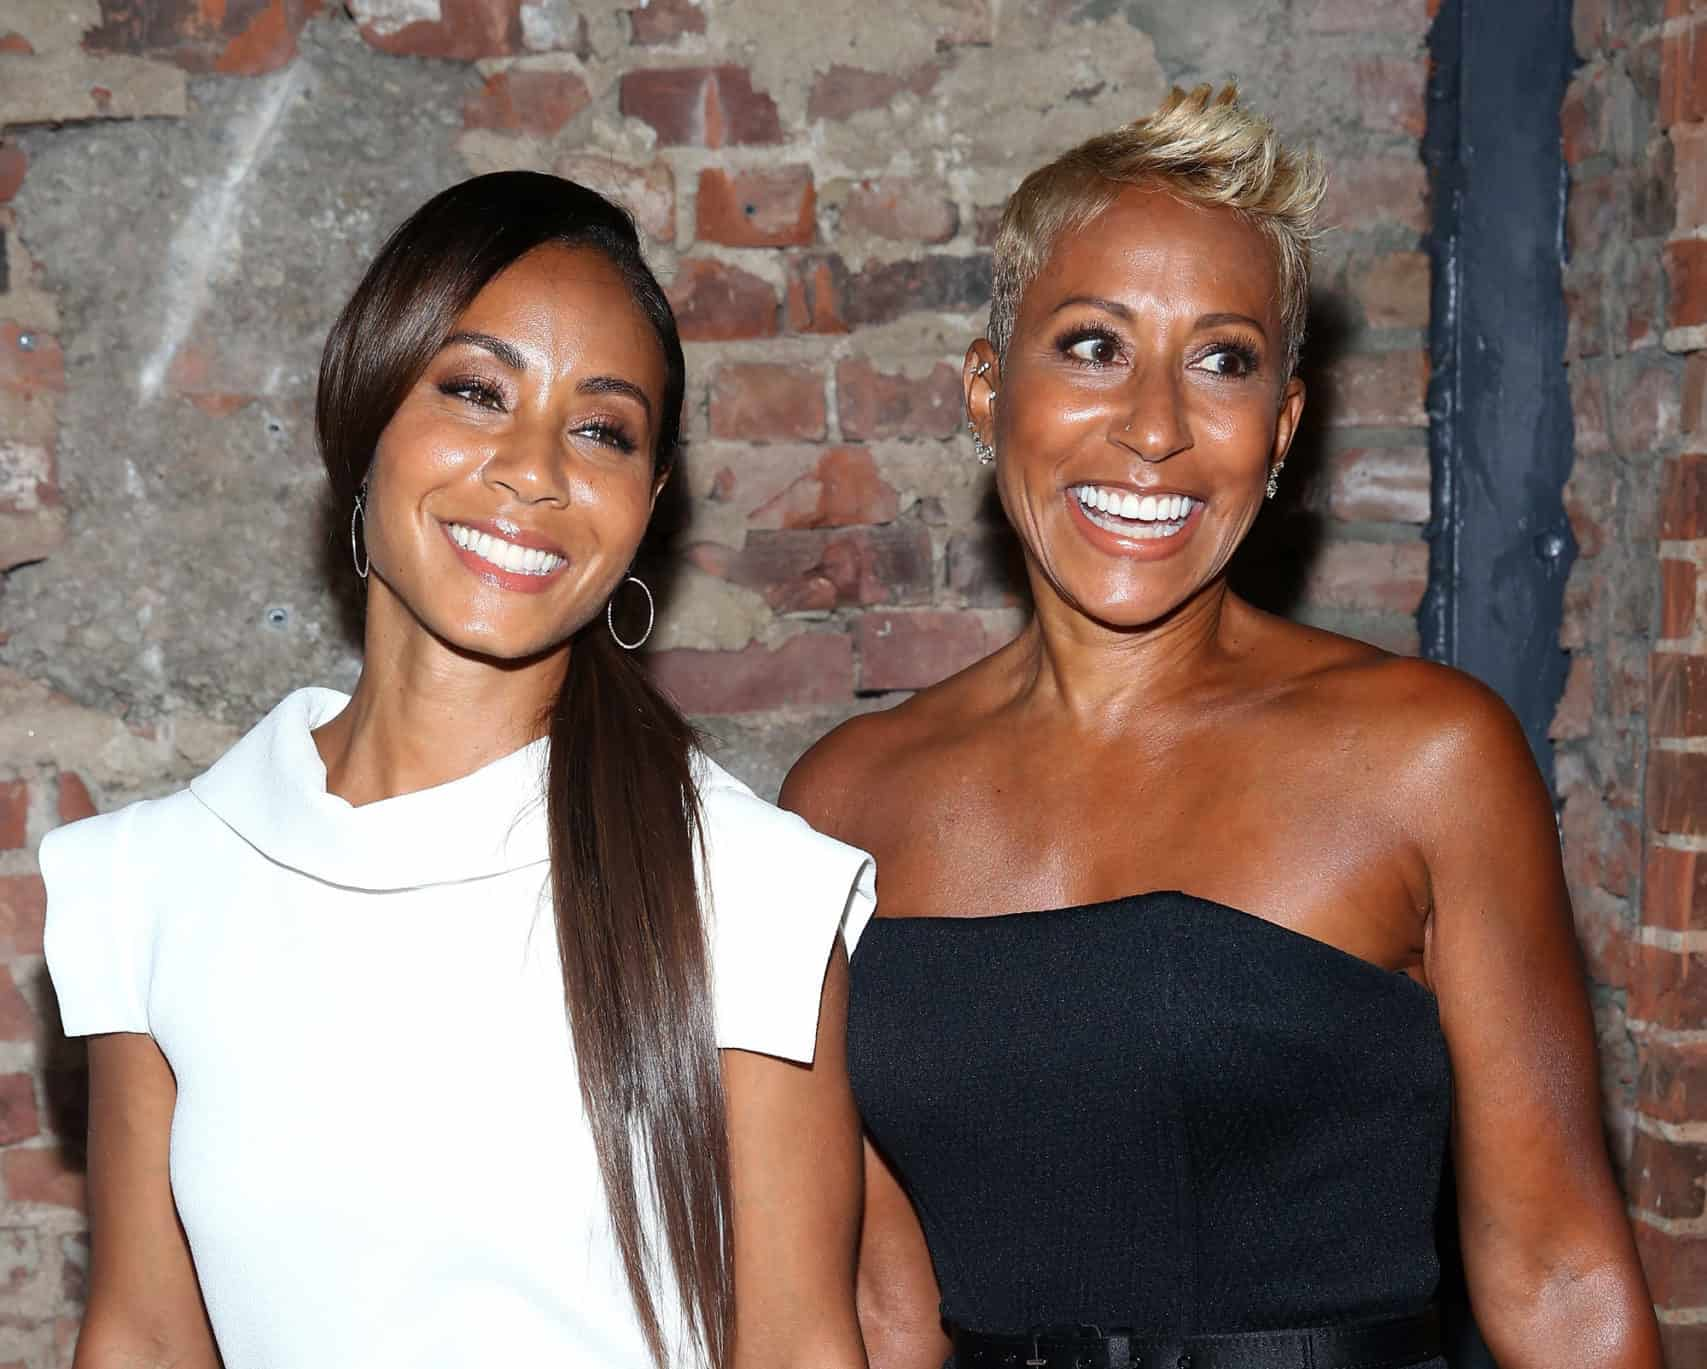 Jada Pinkett Smith's Mother Reveals She Had Non-Consensual Sex In Her Marriage To Jada's Father